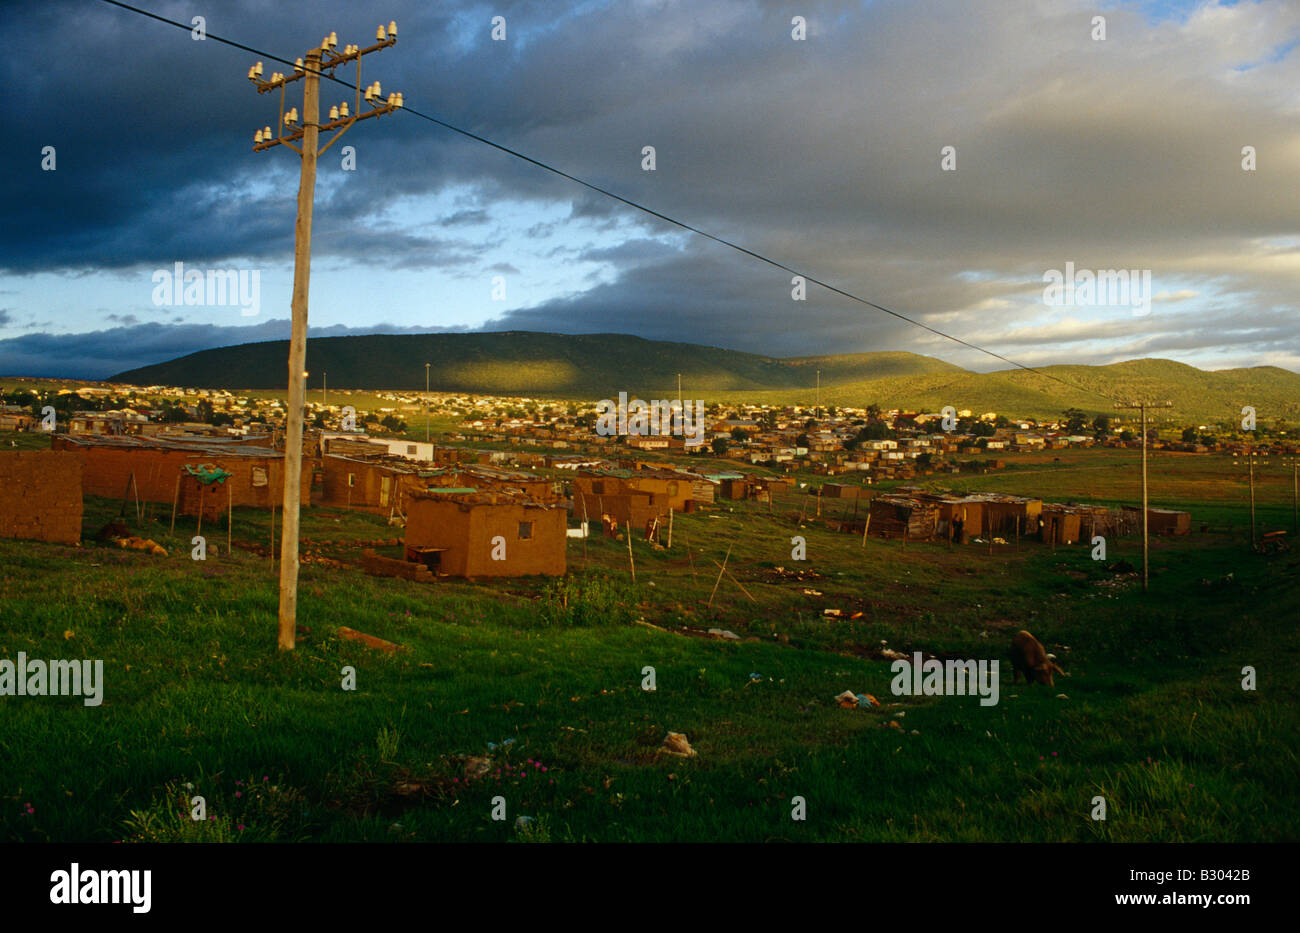 Settlement of huts with electricity supply cables. KwaZulu-Natal Midlands, South Africa. Stock Photo